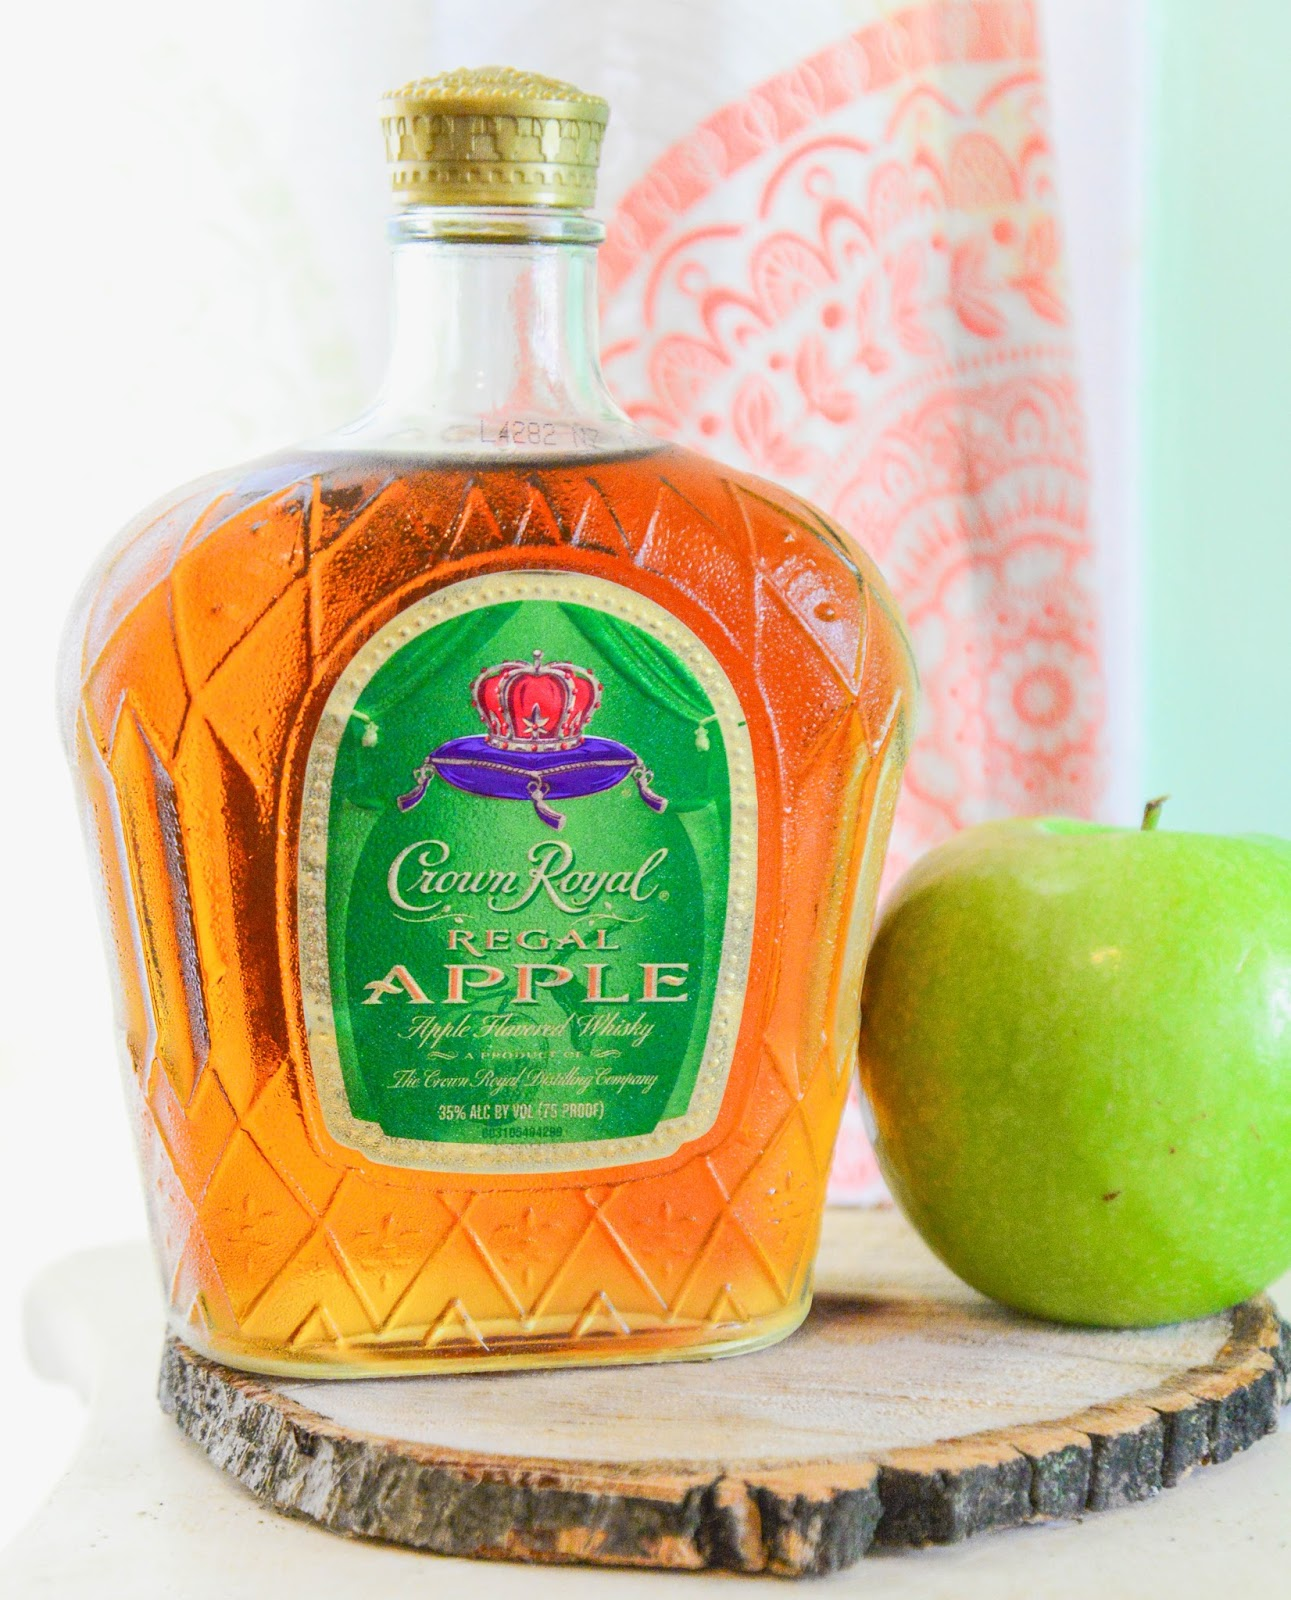 Crown Royal Regal Apple #HolidayGiftGuide